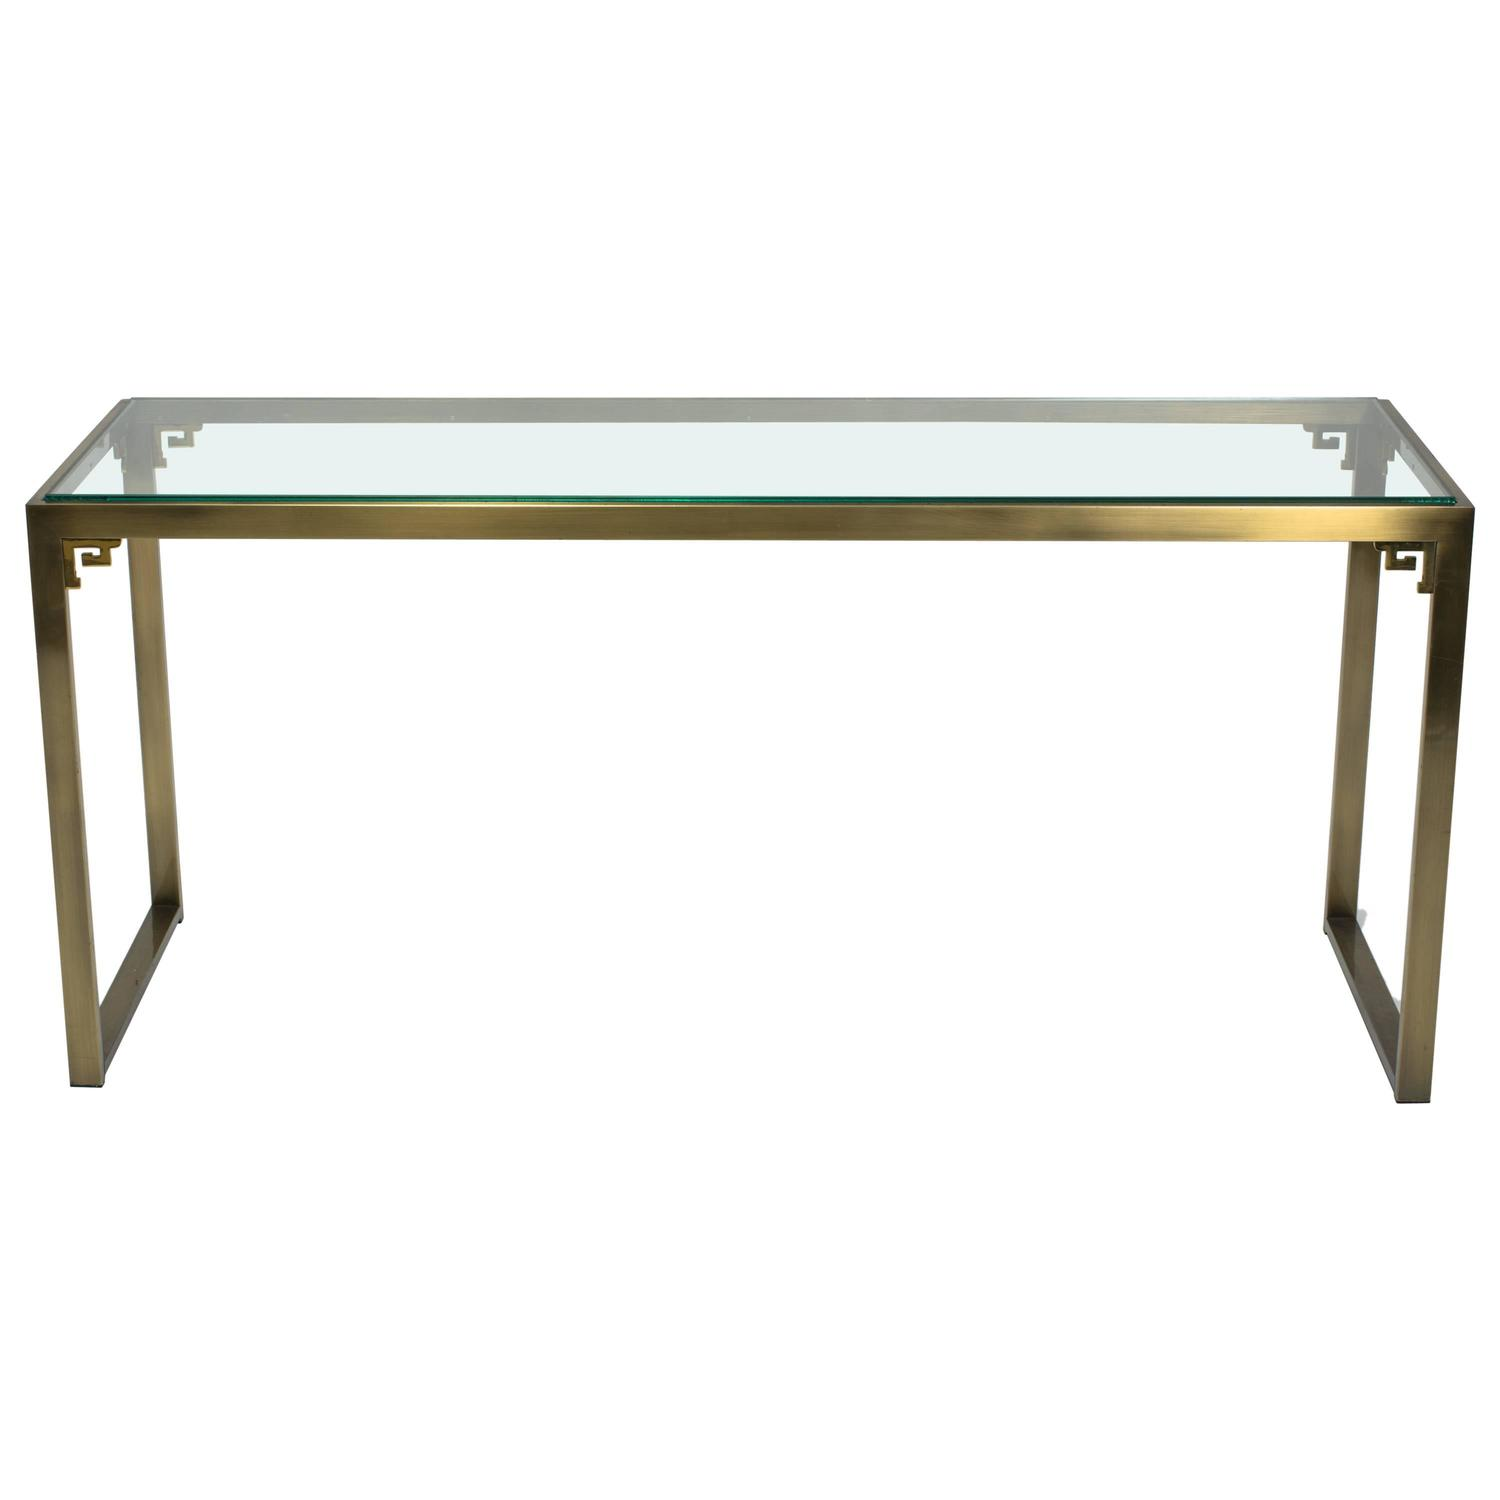 A unique horn design console table for sale at 1stdibs greek key brass console table by design institute of america geotapseo Choice Image